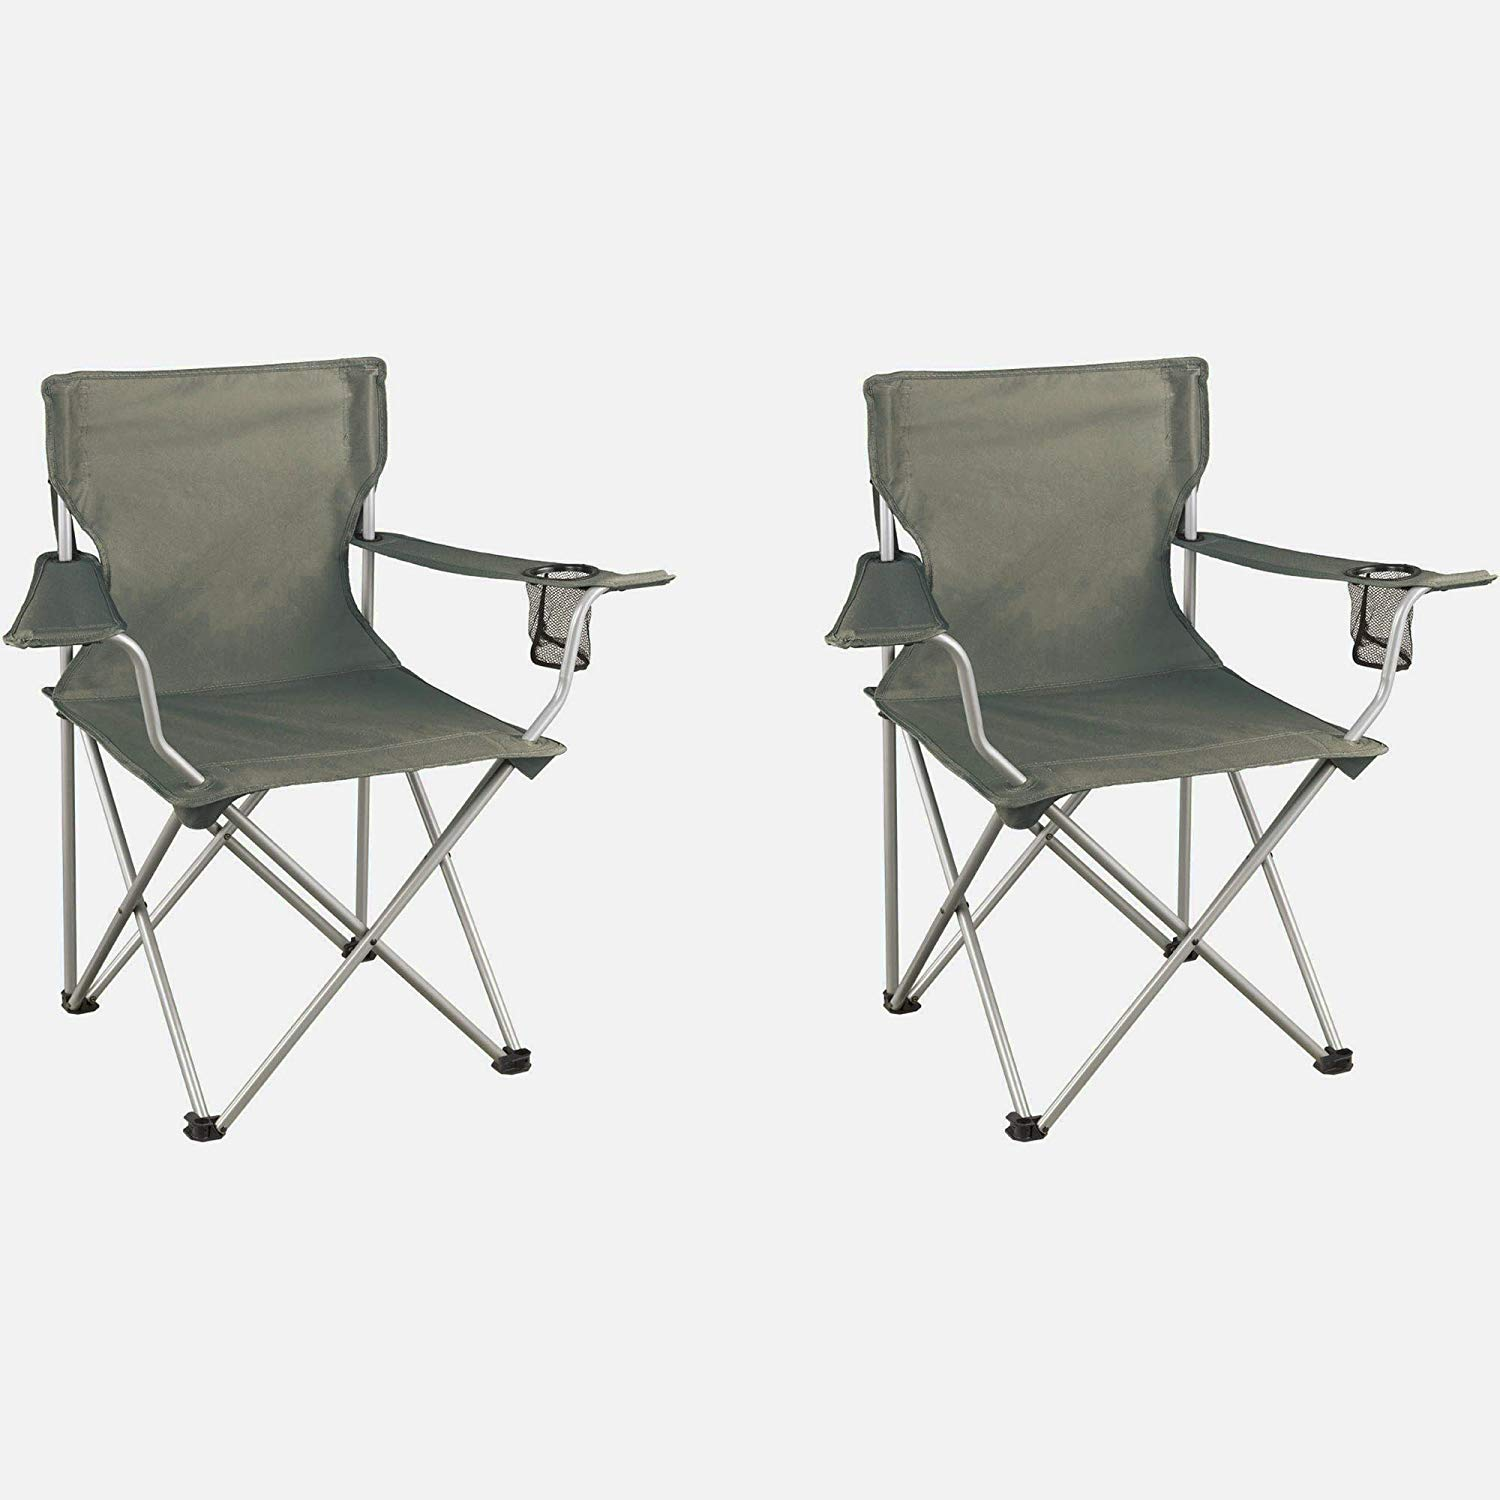 Huge Comfy Chair, Two Pieces, Grey Color, Steel Frame, Durable And High Resistant Construction, Lightweight, An Attractive And Modern Design, Portable, Foldable, Easy Setup, Low Maintenance & E-Book.